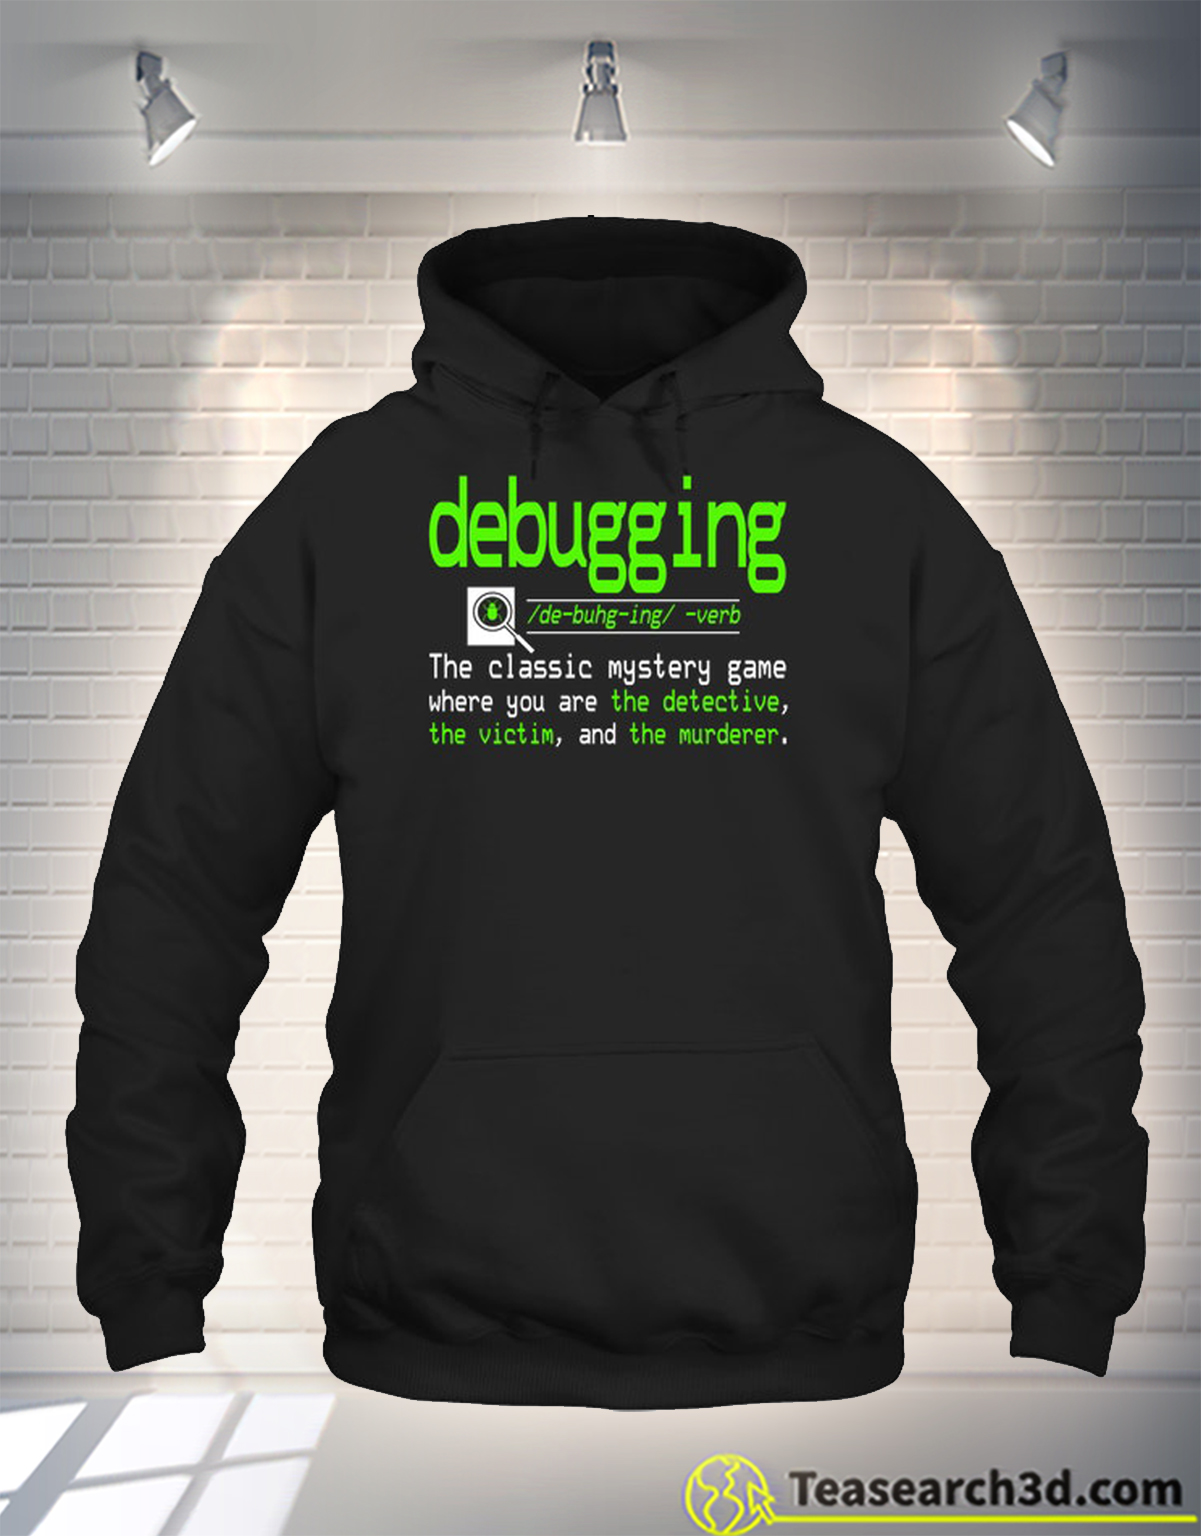 Debugging definition the classic mystery game t-shirt